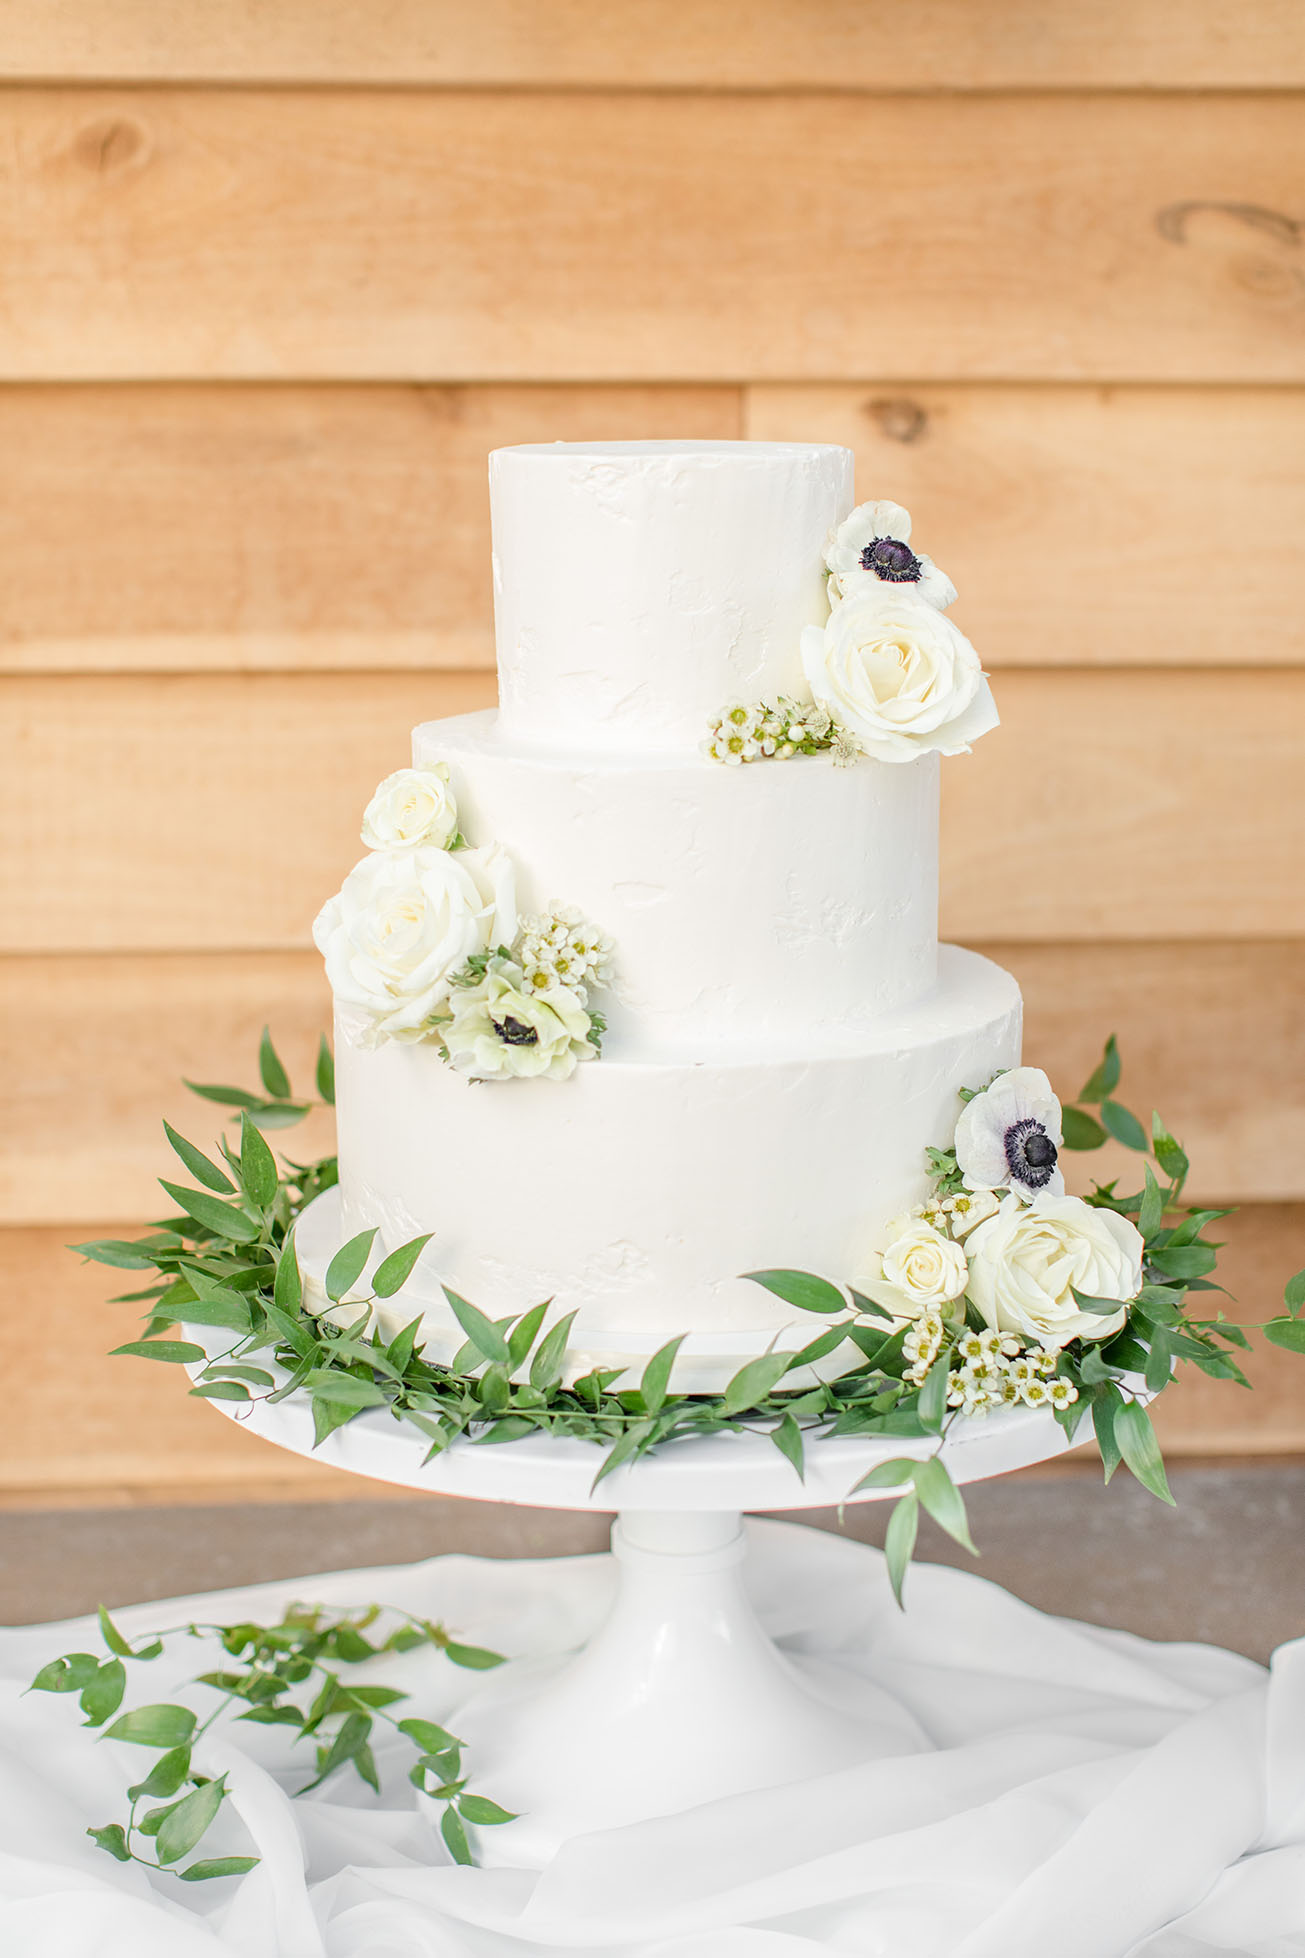 Three Tiered White Frosted Wedding Cake